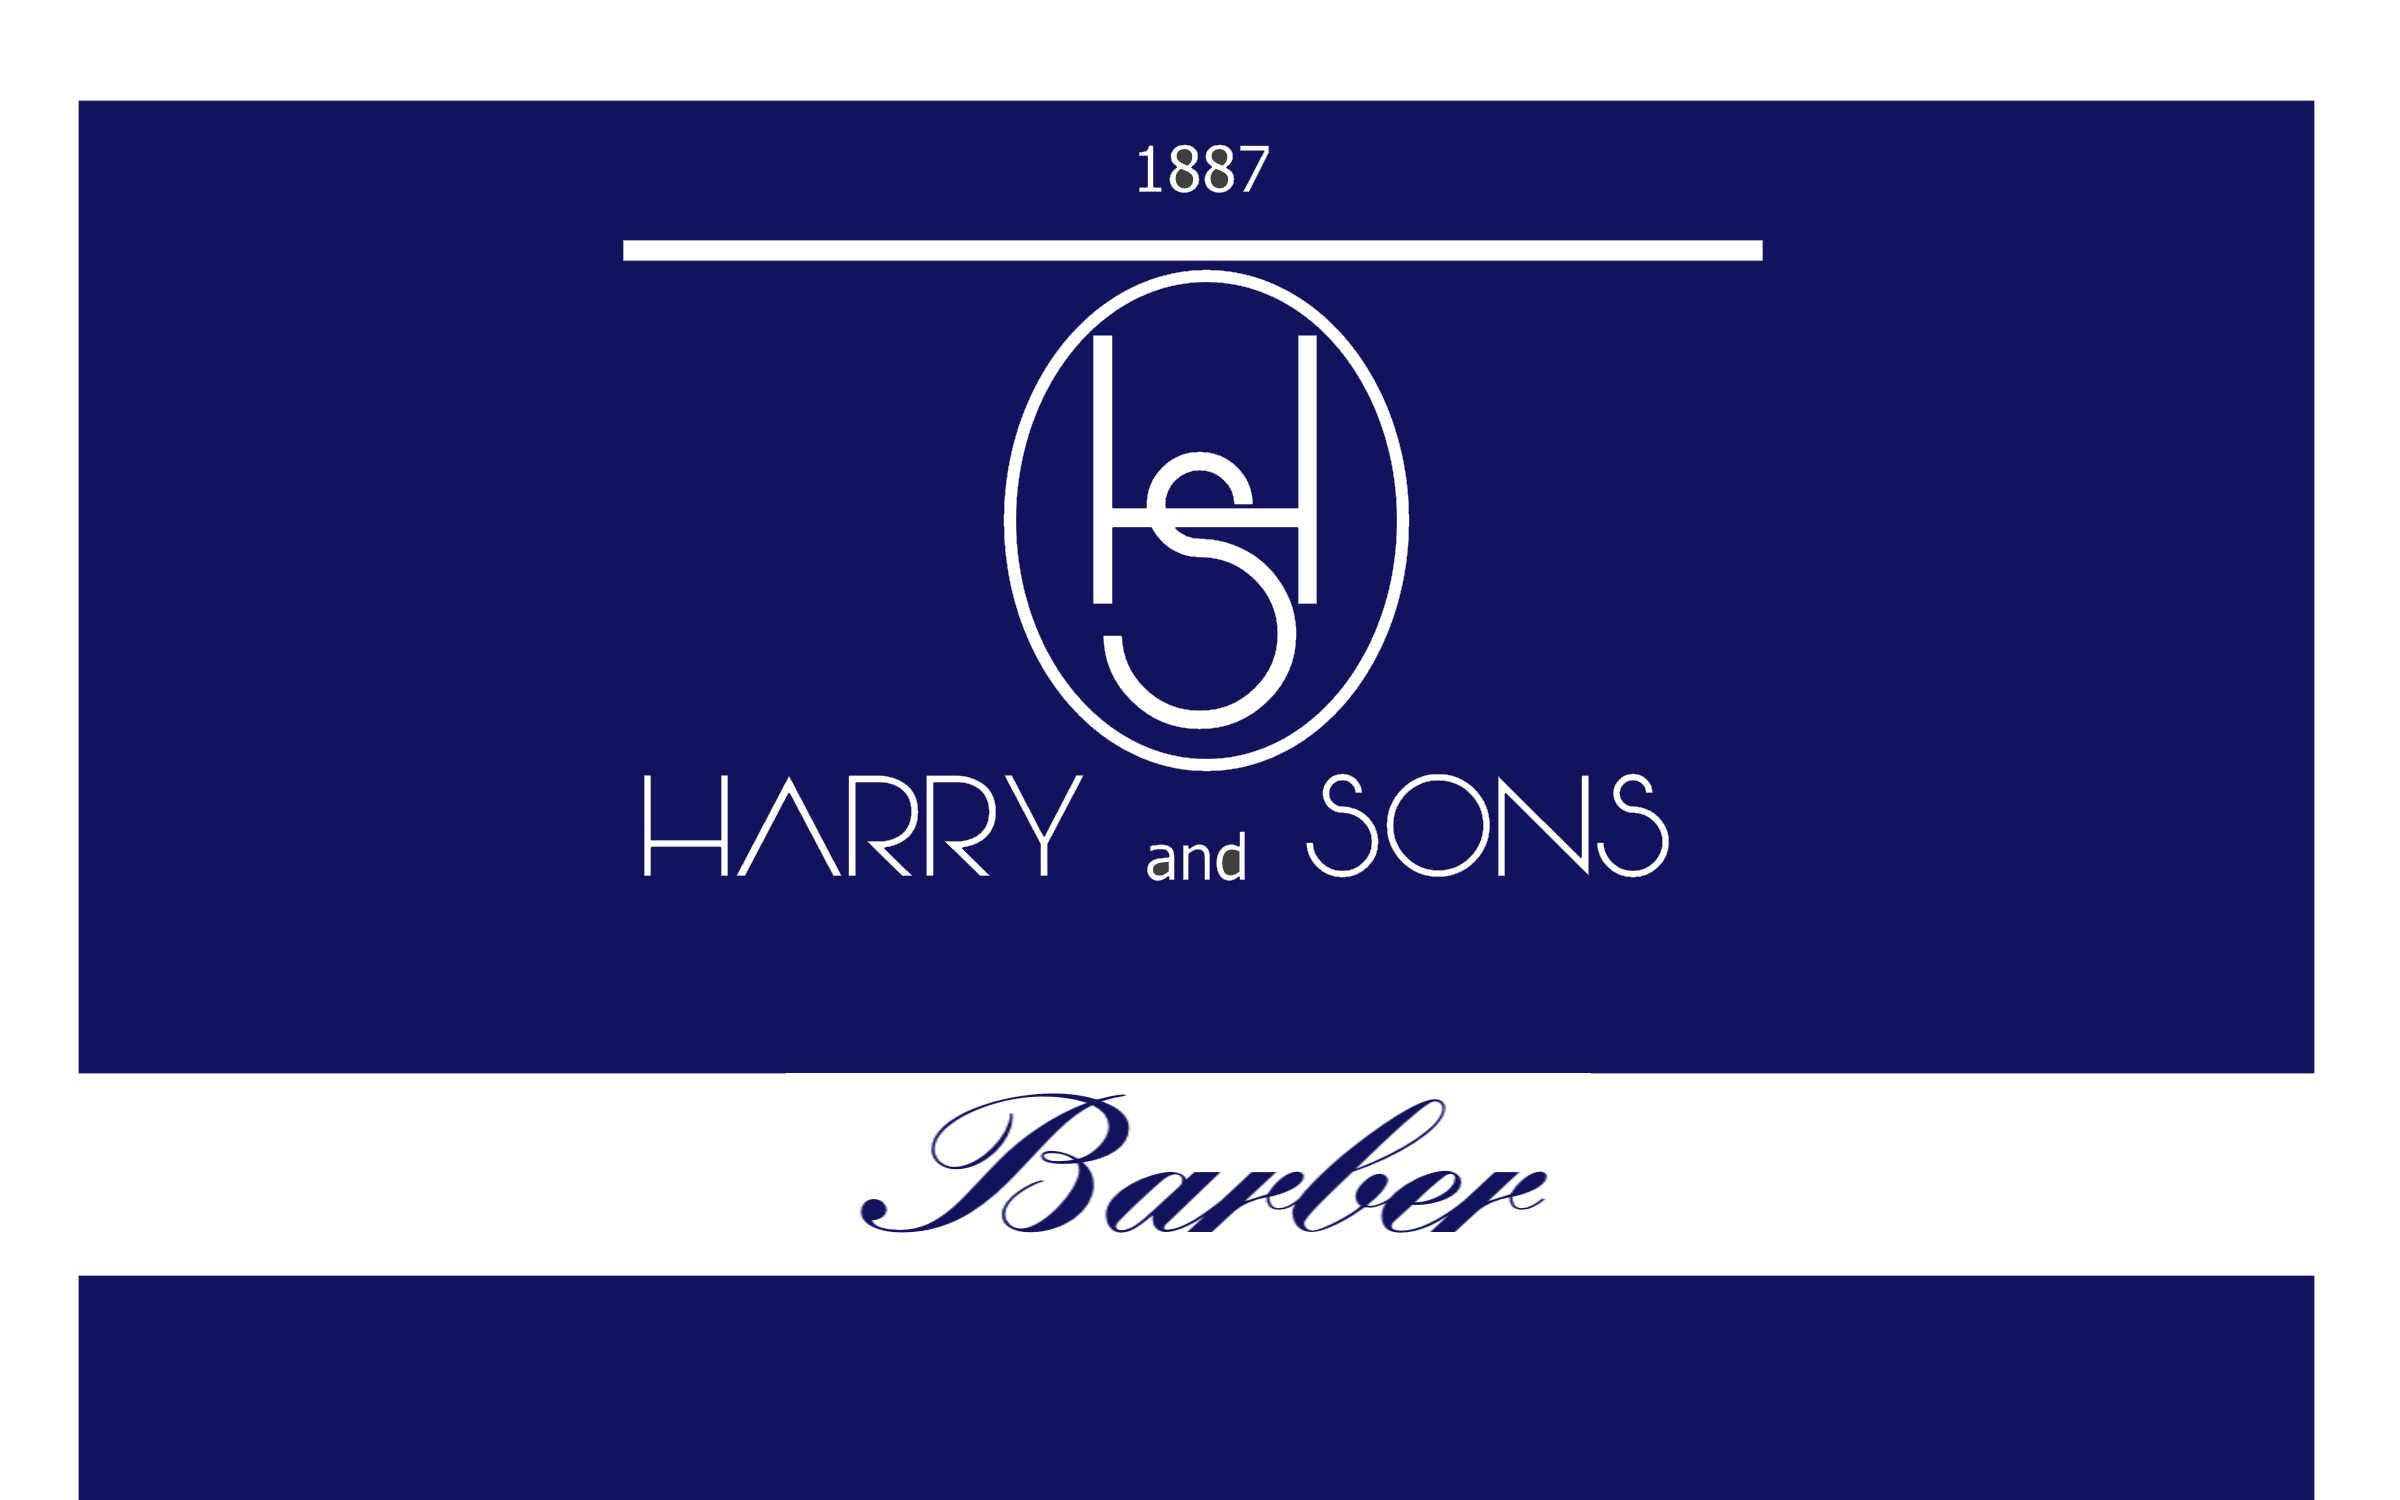 Logo Design by Roberto Bassi - Entry No. 130 in the Logo Design Contest Captivating Logo Design for Harry and Sons Barber.